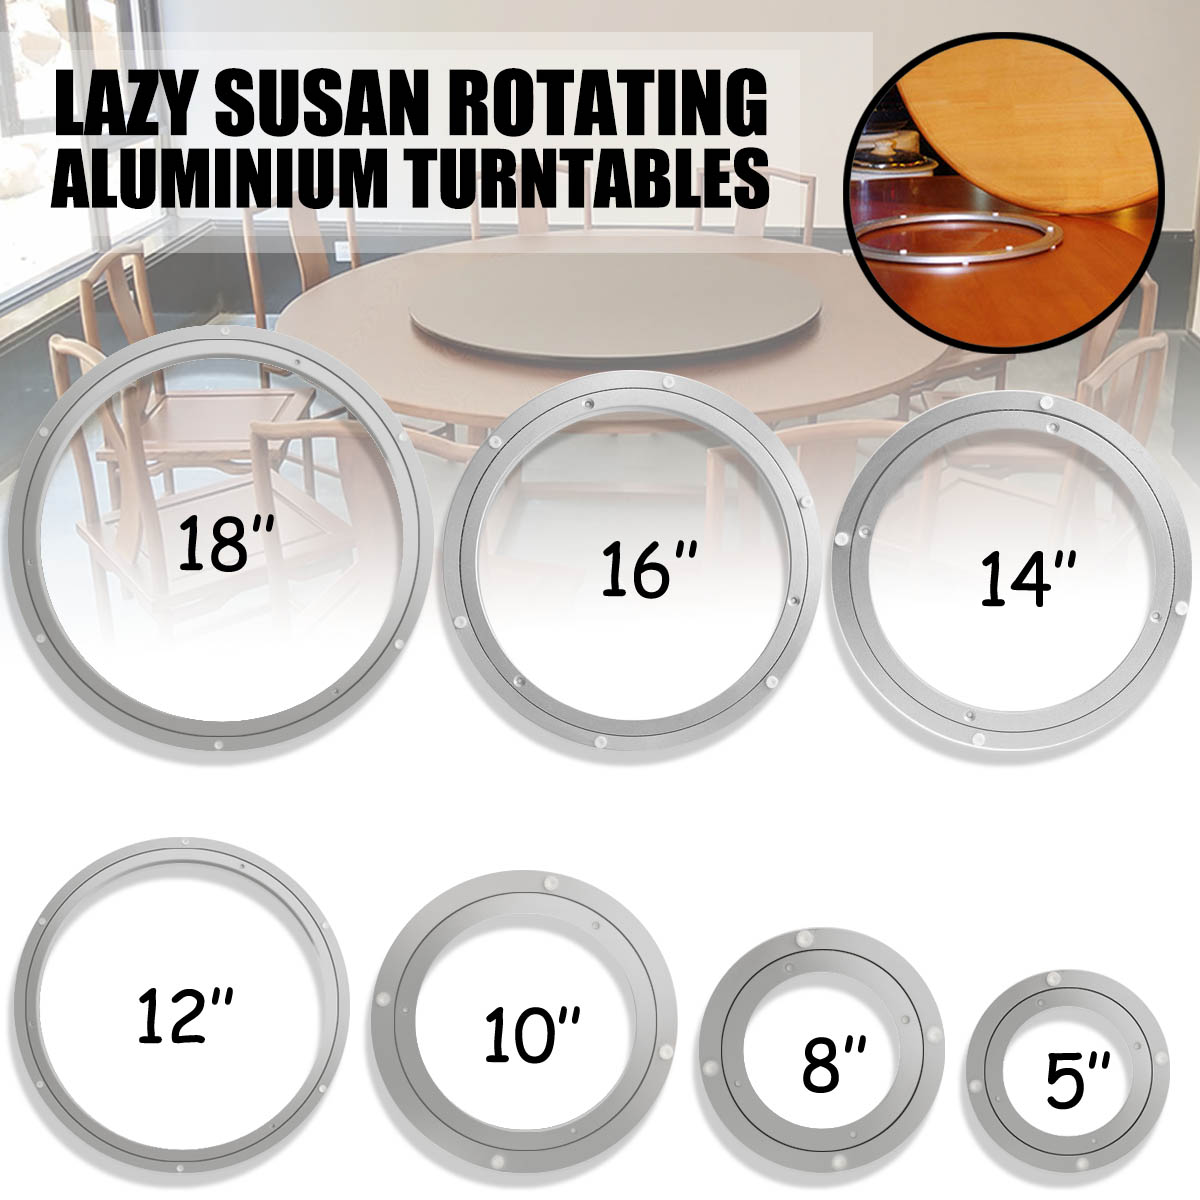 Heavy   Aluminium Rotating Bearing Turntable Turn Table Round Swivel Plate 7 Size for Cake Decorations Catering ServicesHeavy   Aluminium Rotating Bearing Turntable Turn Table Round Swivel Plate 7 Size for Cake Decorations Catering Services